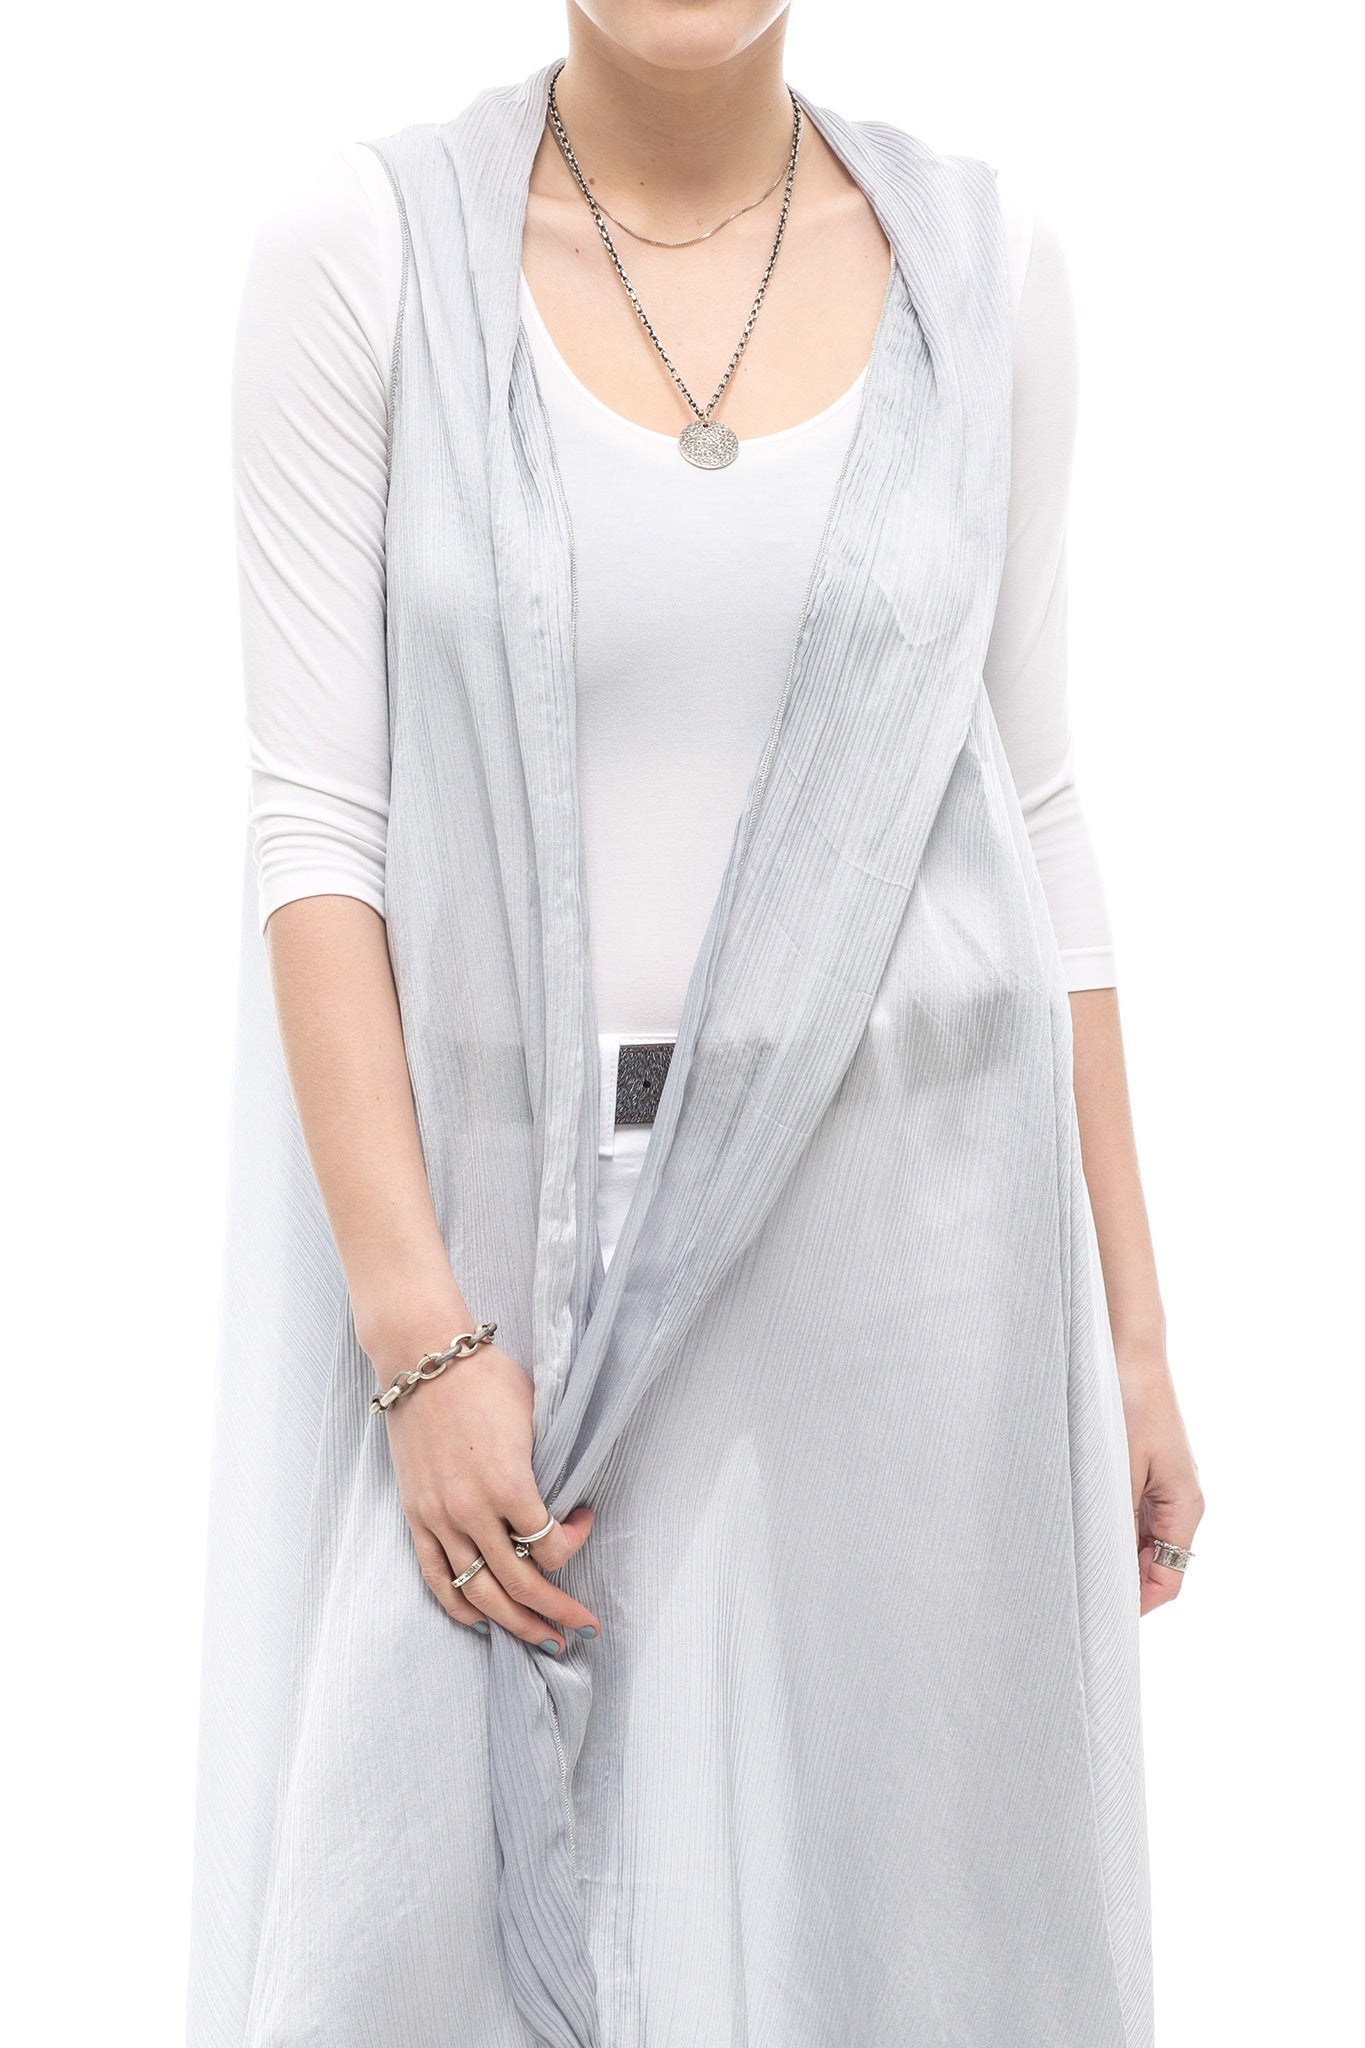 Avant Toi Crete Silk Shawl Vest in Slate Grey (3771905998941)